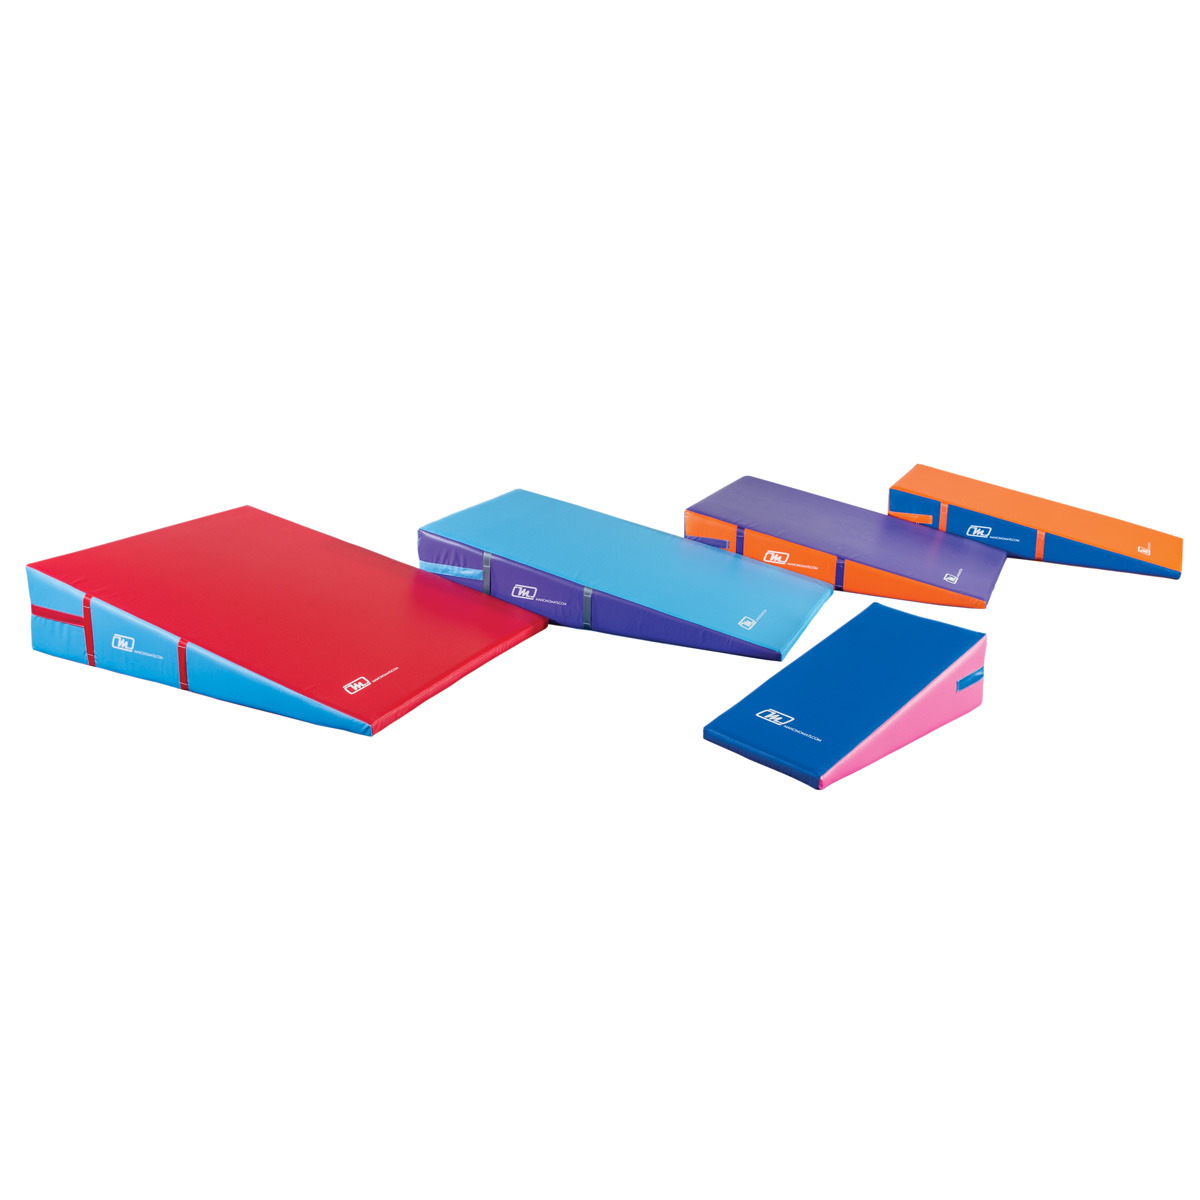 gymnastics cheer incline wedge cheese mats - Mancino Mats